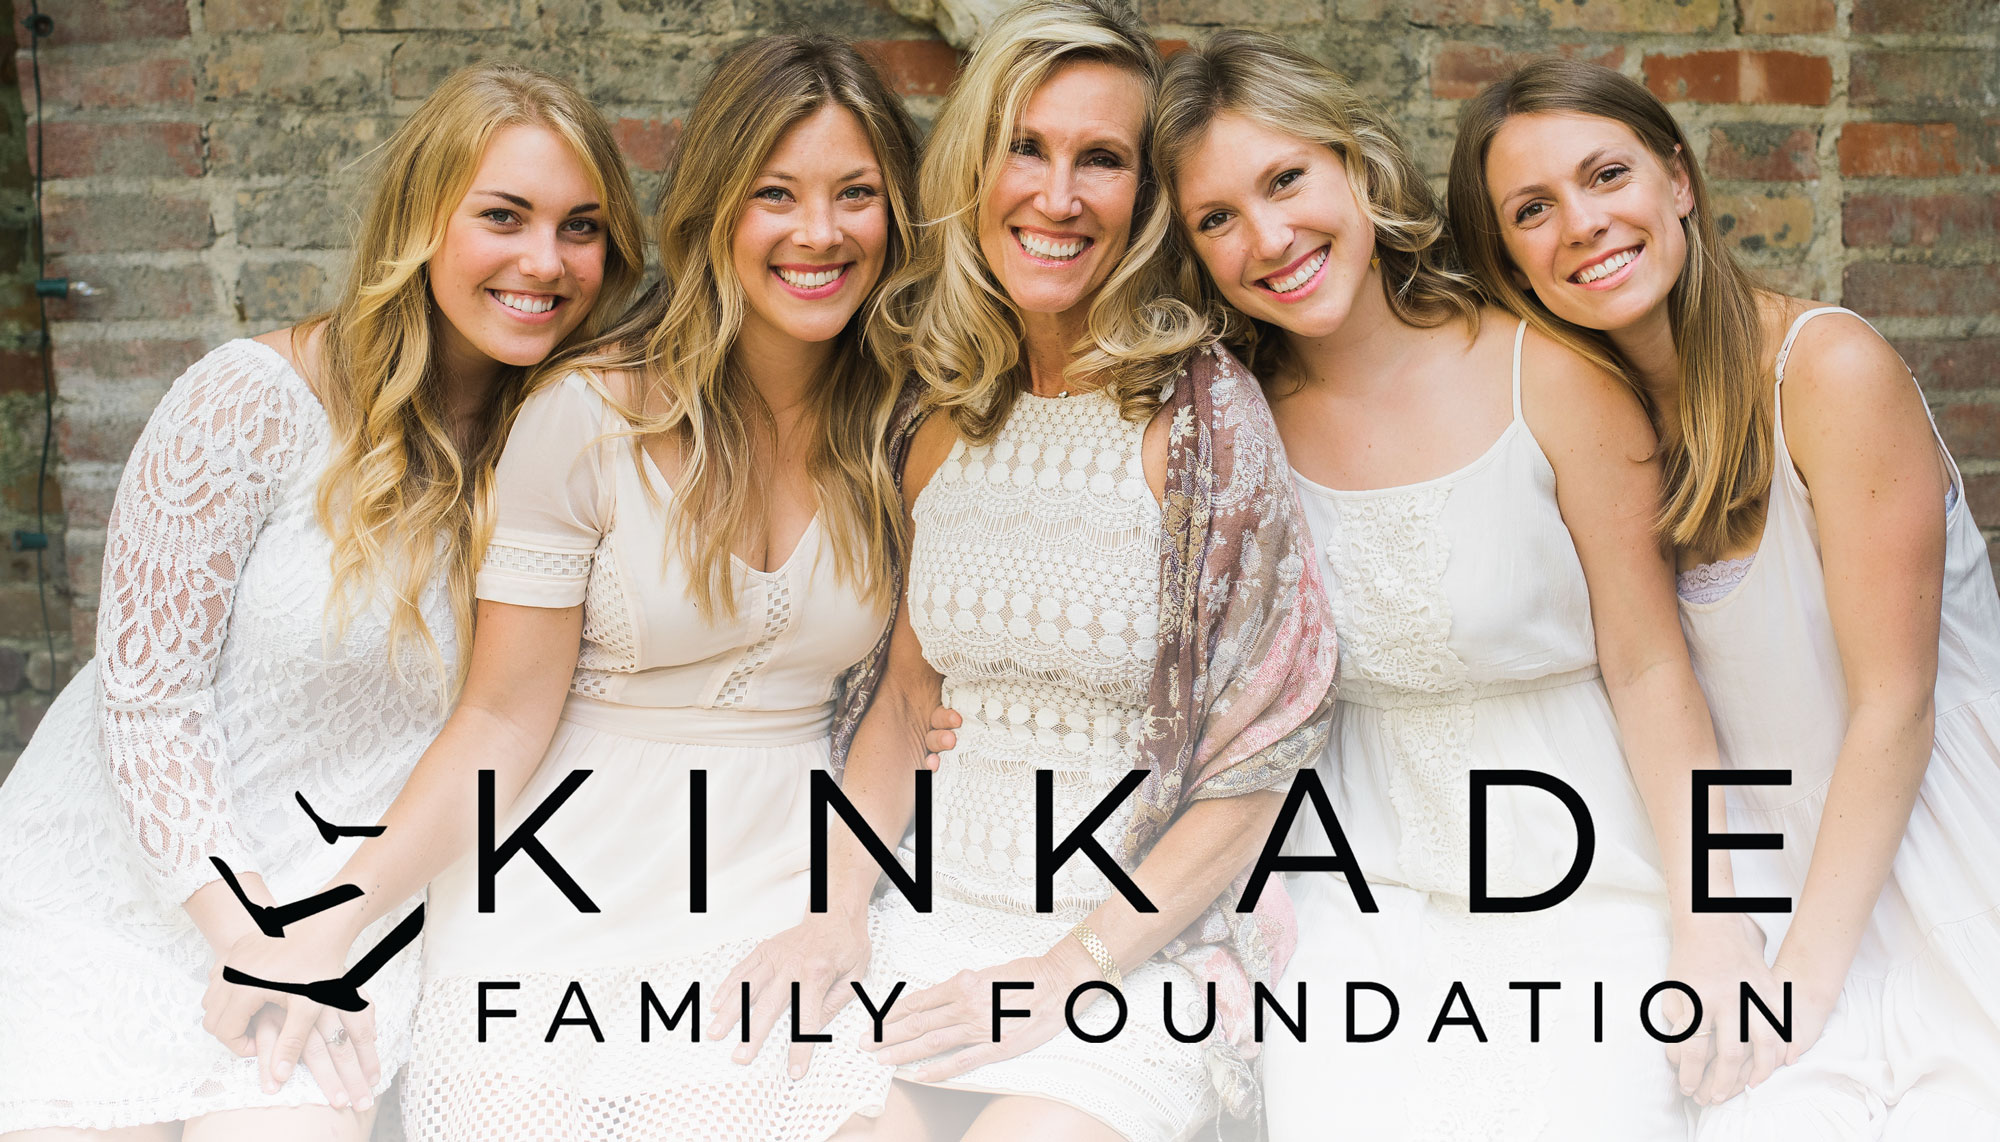 The Kinkade Family Foundation